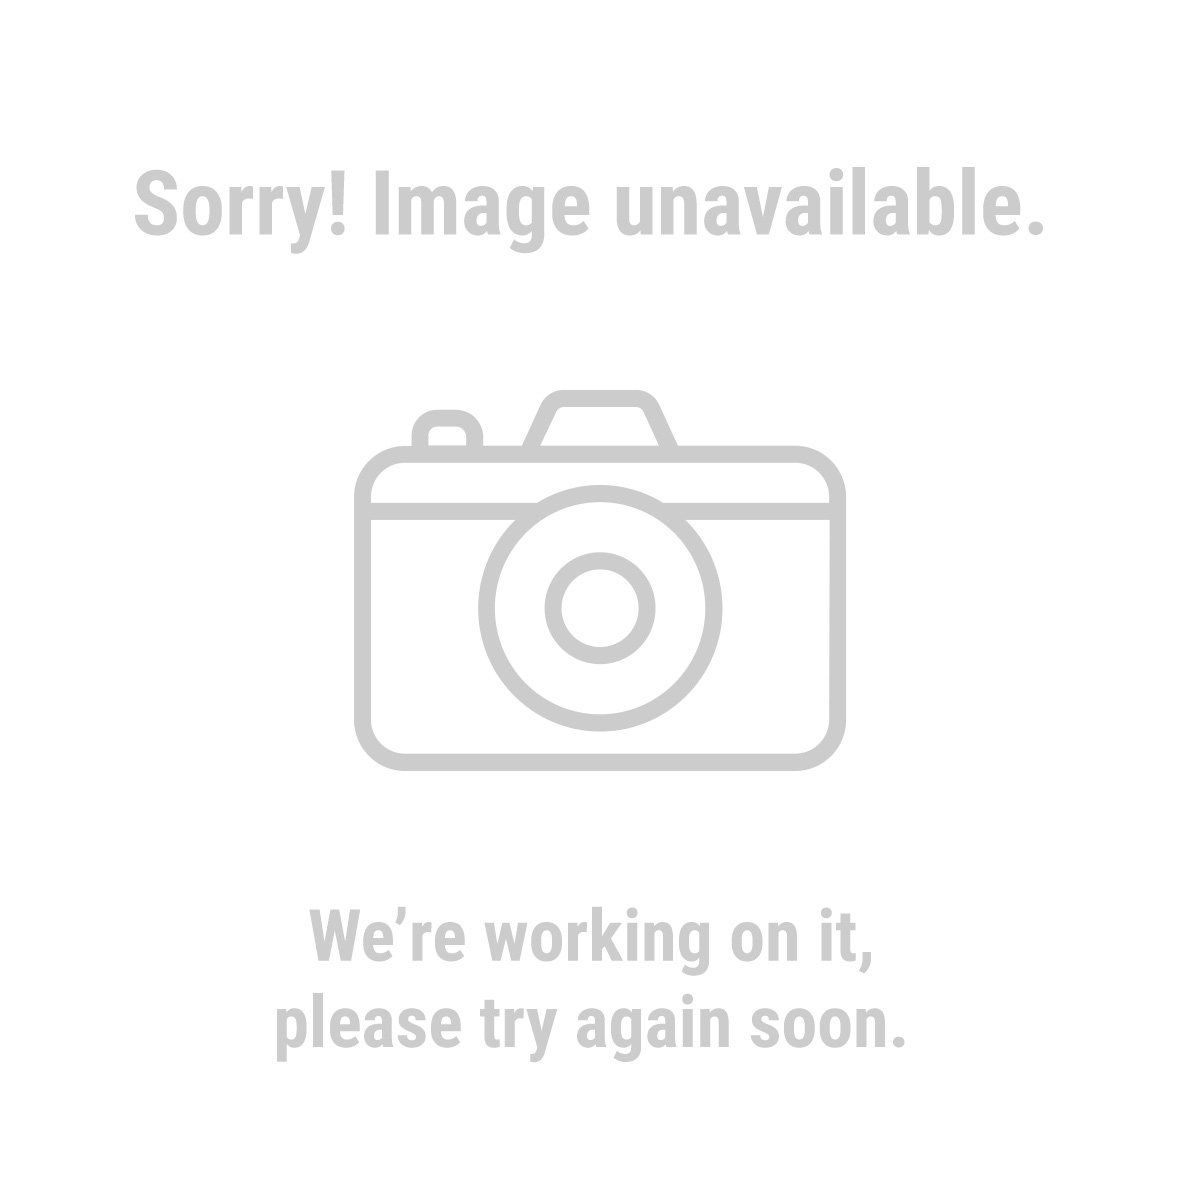 Pittsburgh® Automotive 61232 450 Lb. Capacity Low Lift Transmission Jack